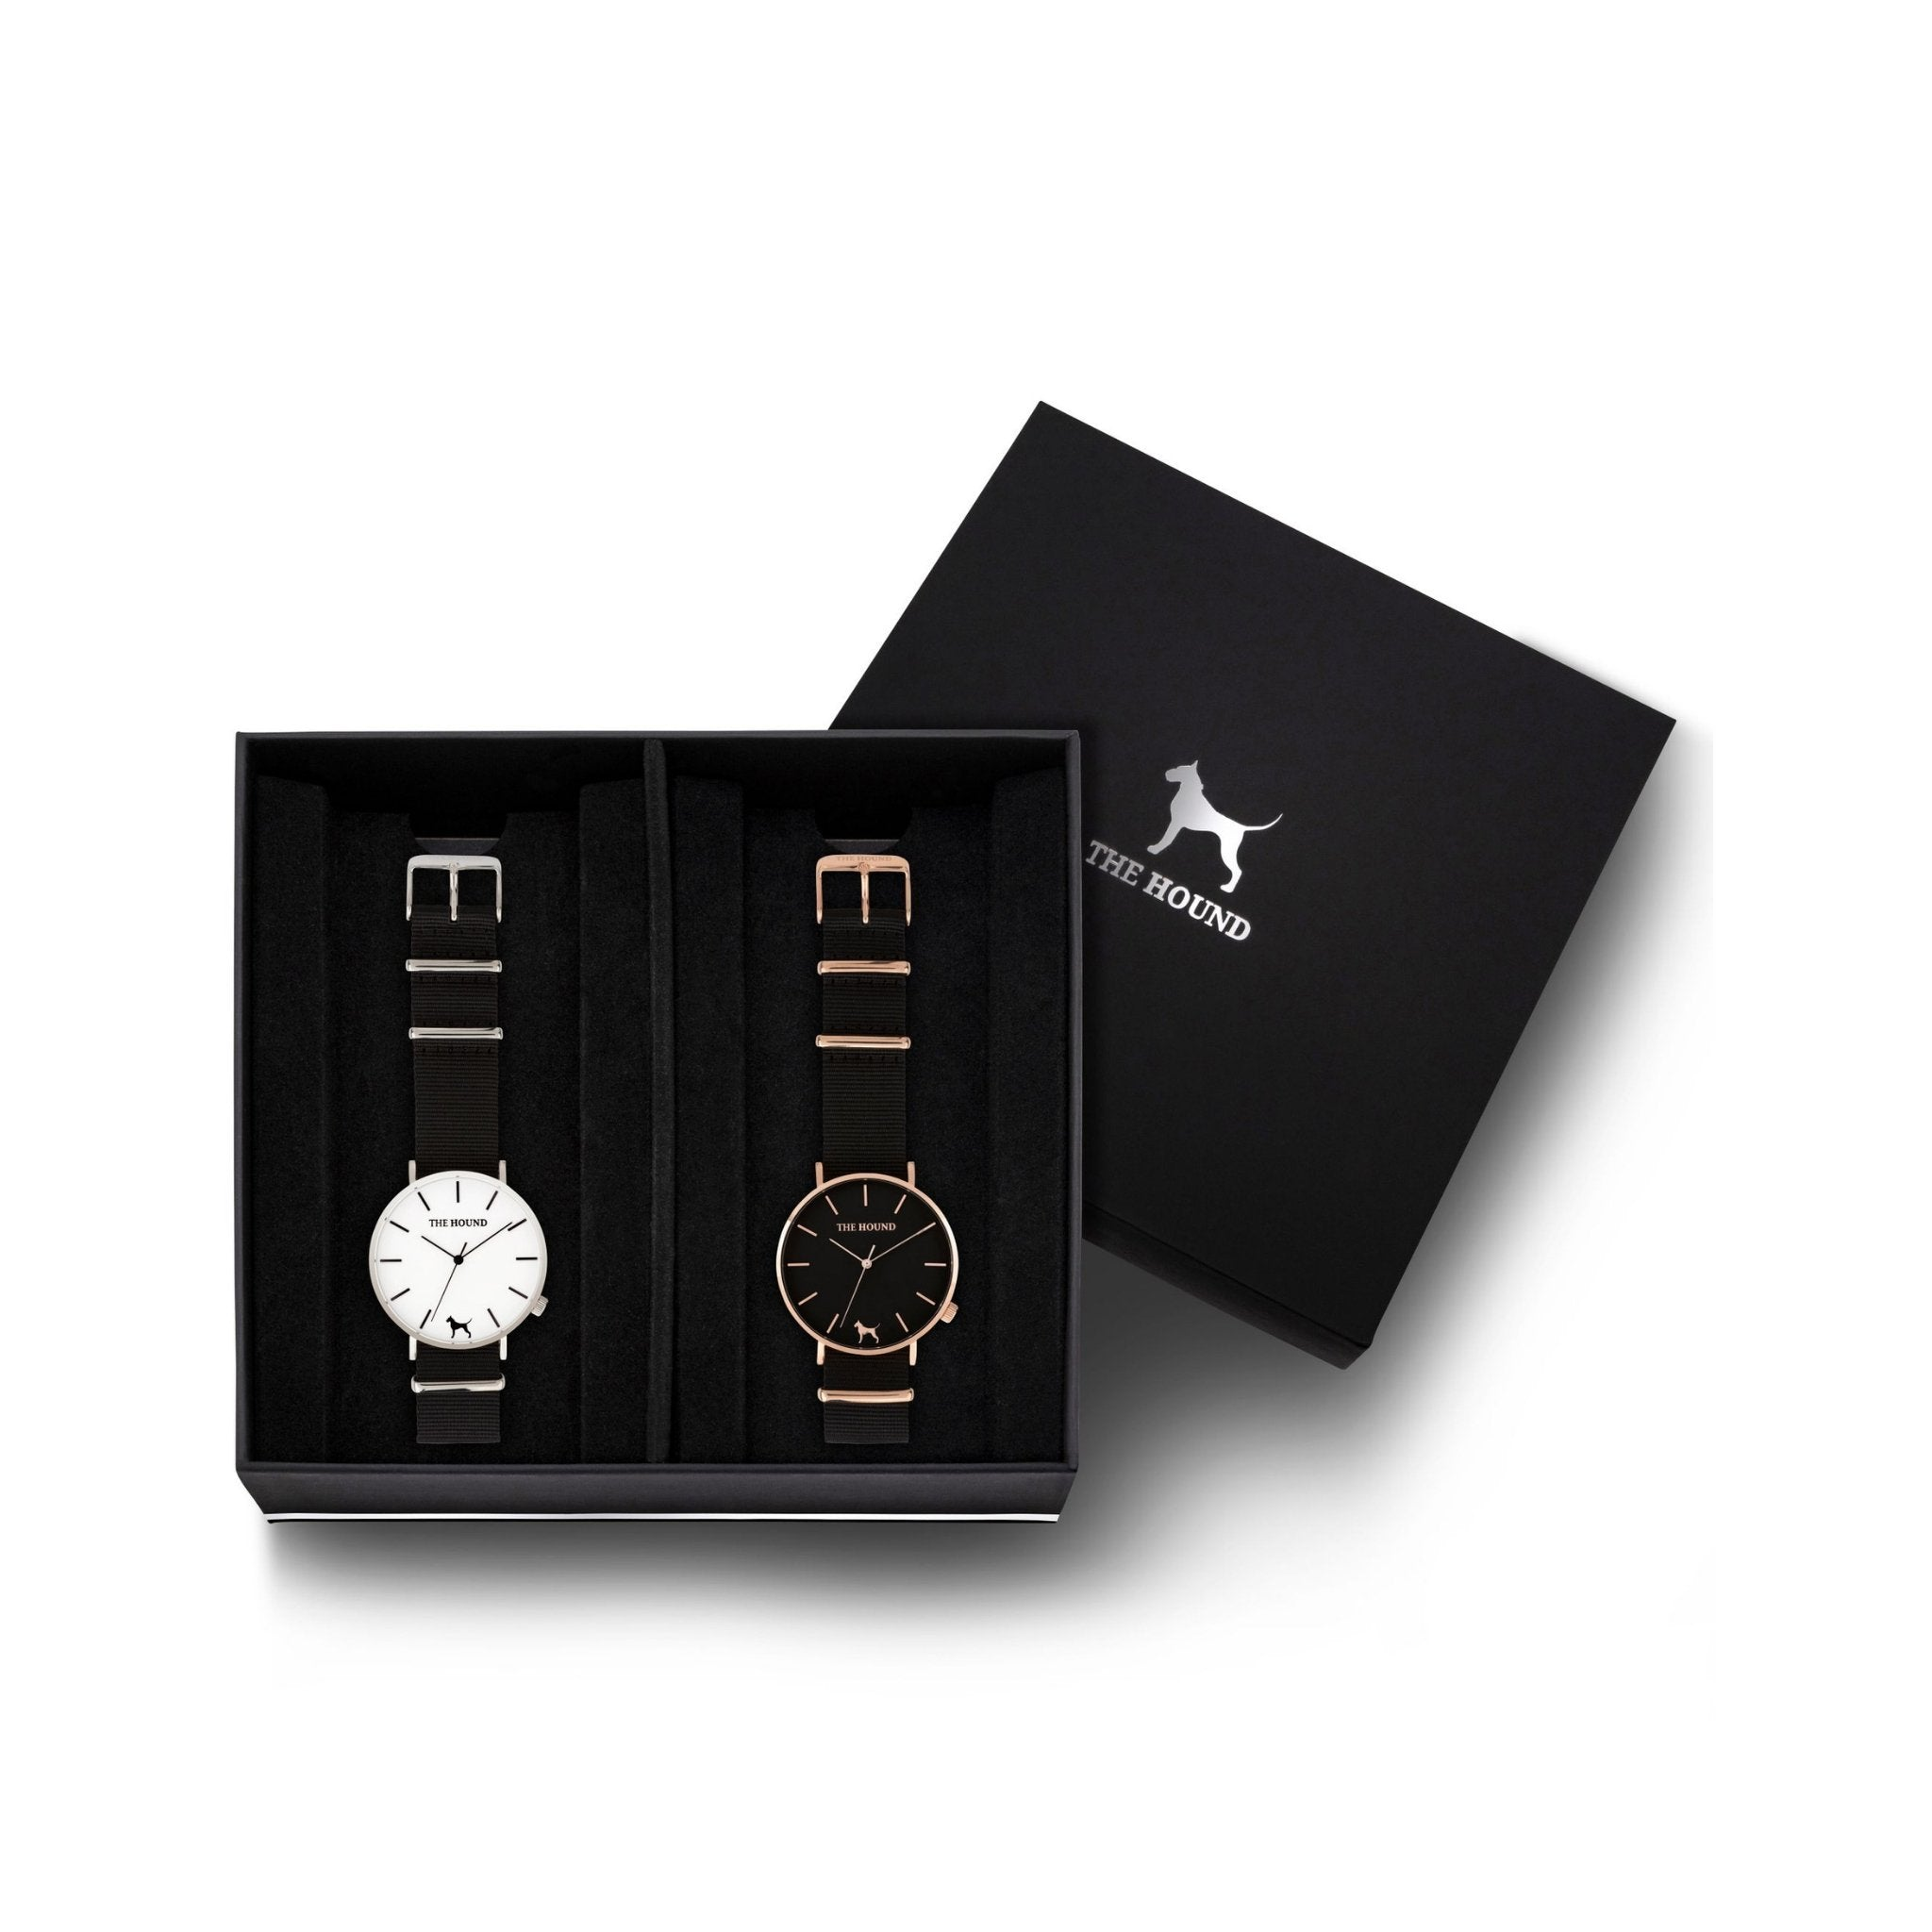 Custom gift set - Silver and white watch with black nato band and a rose gold and black watch with black nato leather band